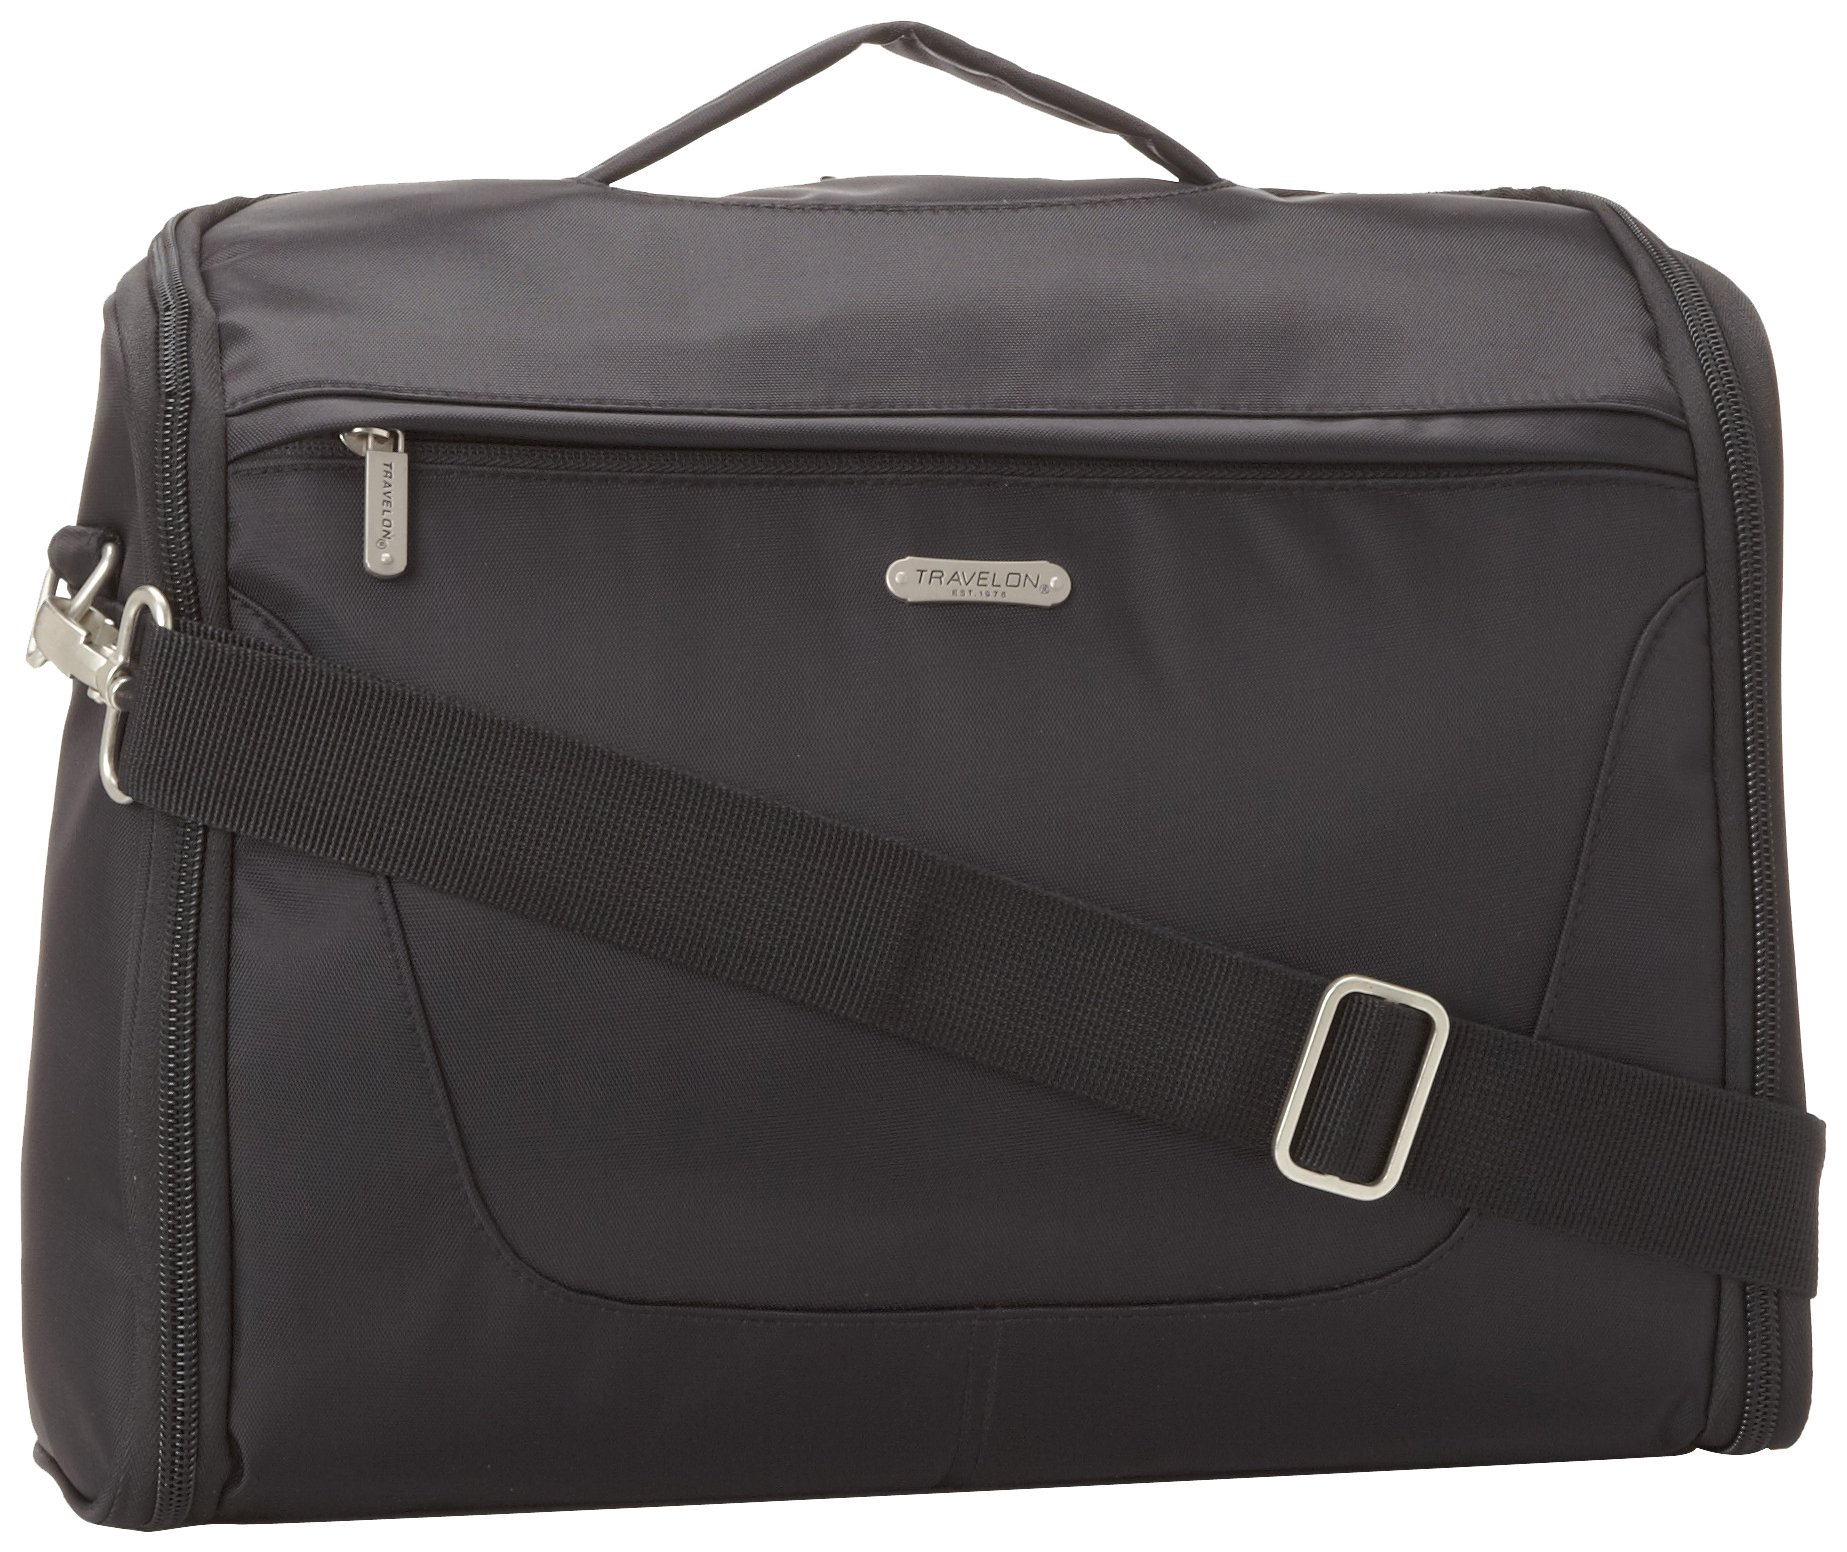 Travelon Independence Bag, Black, One Size